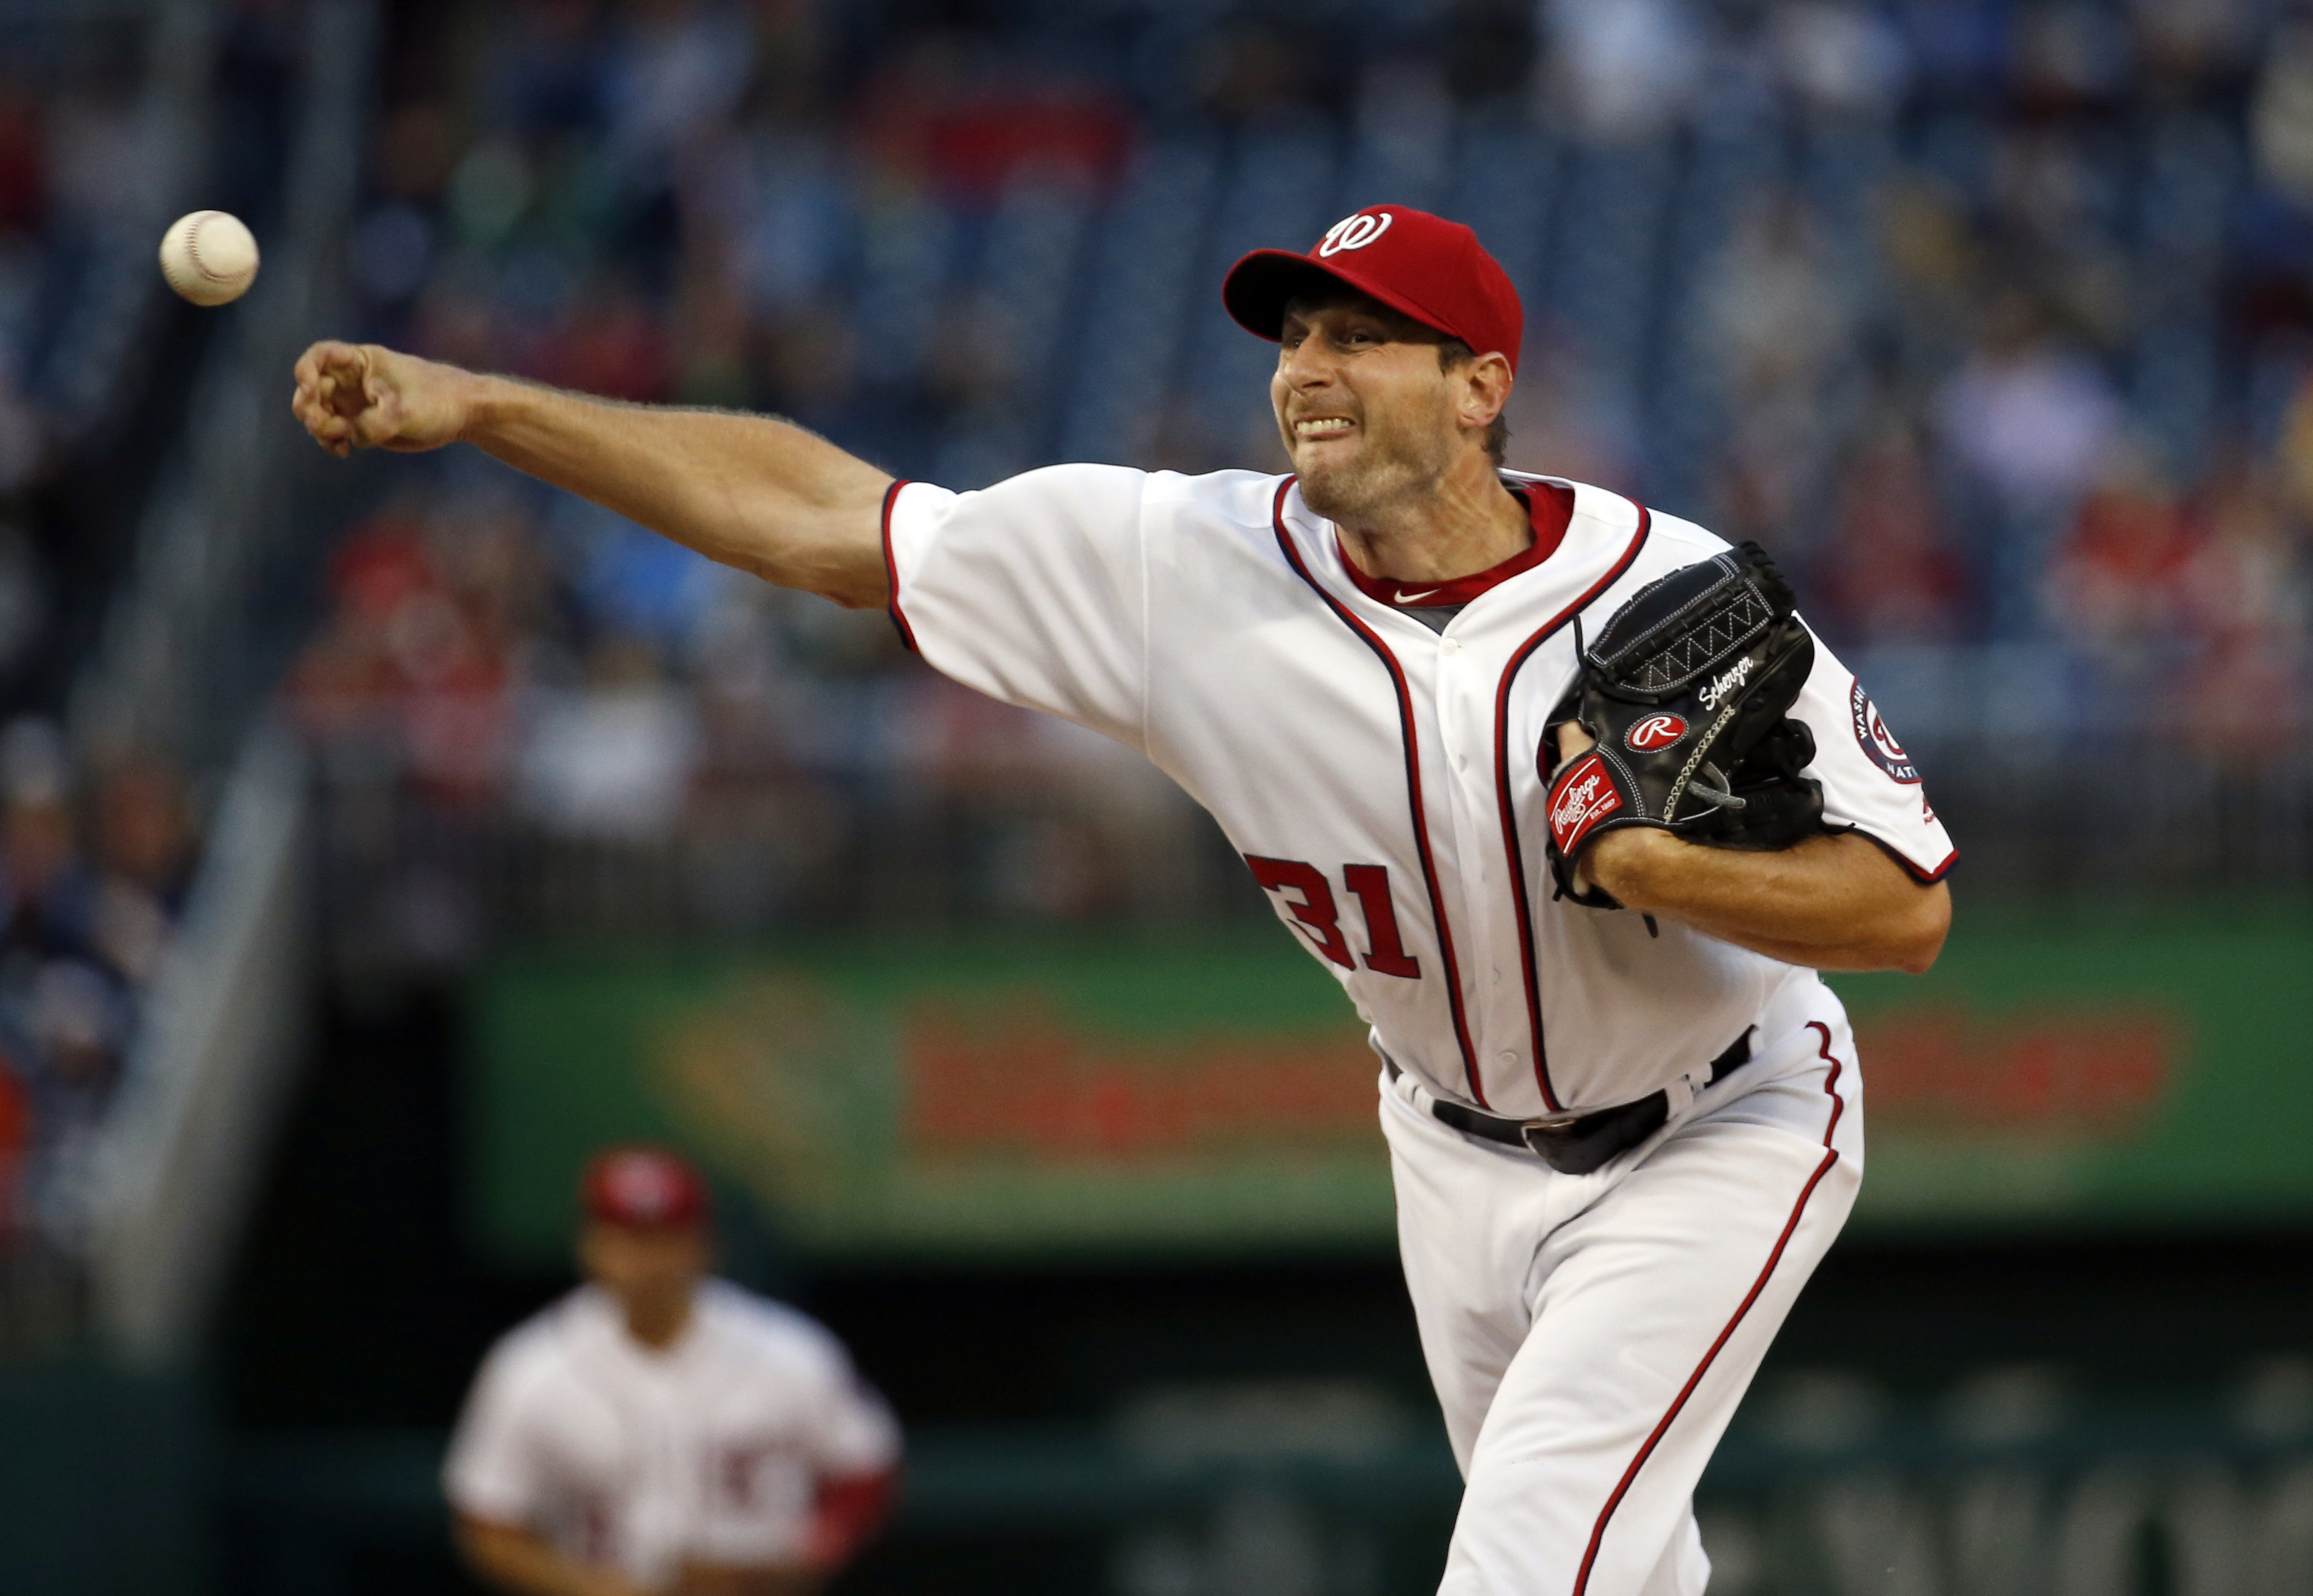 Washington Nationals starting pitcher Max Scherzer throws during the first inning of the team's baseball game against the Detroit Tigers at Nationals Park, Wednesday, May 11, 2016, in Washington. (AP Photo/Alex Brandon)